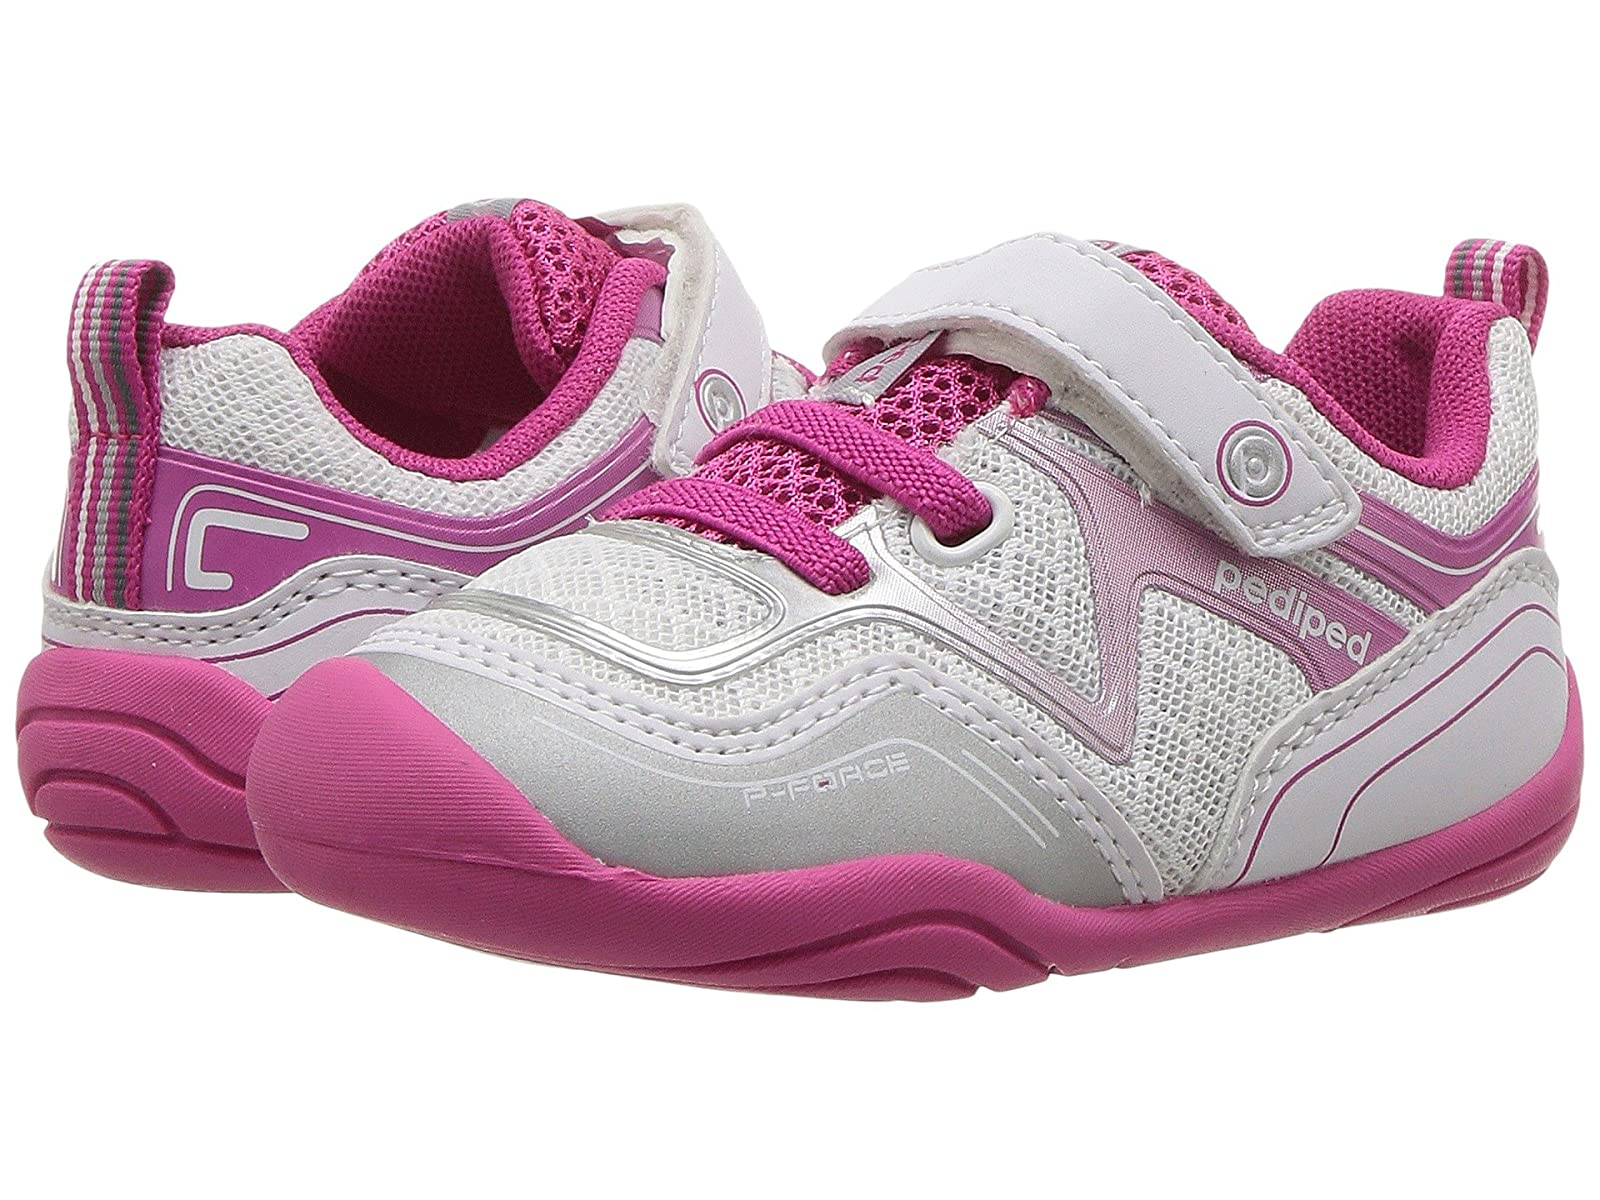 pediped Force Grip n Go (Toddler)Atmospheric grades have affordable shoes